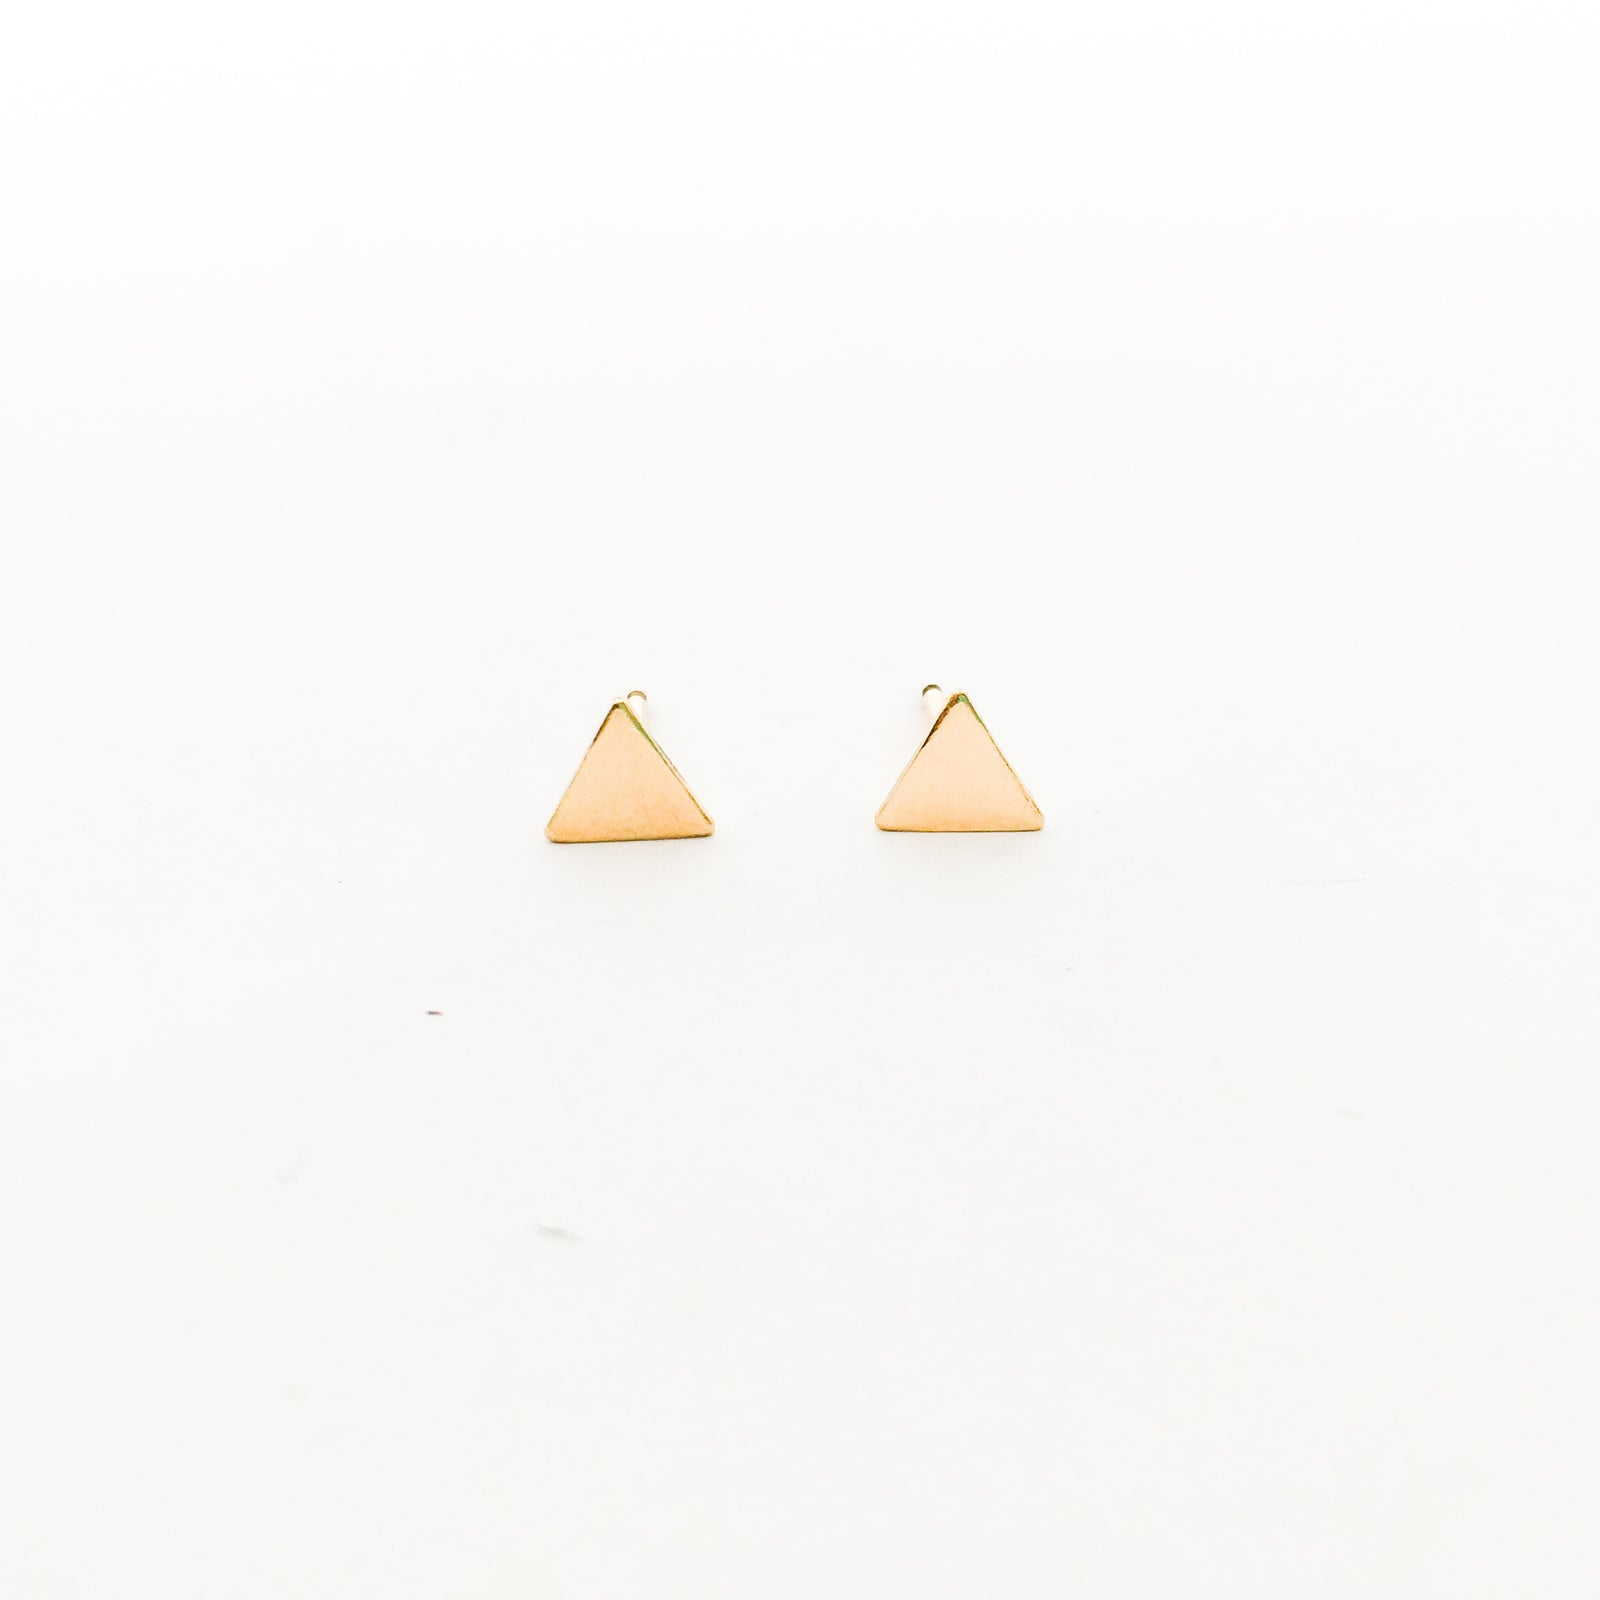 MINI TRIANGLE STUD EARRINGS | 14K GOLD-FILLED